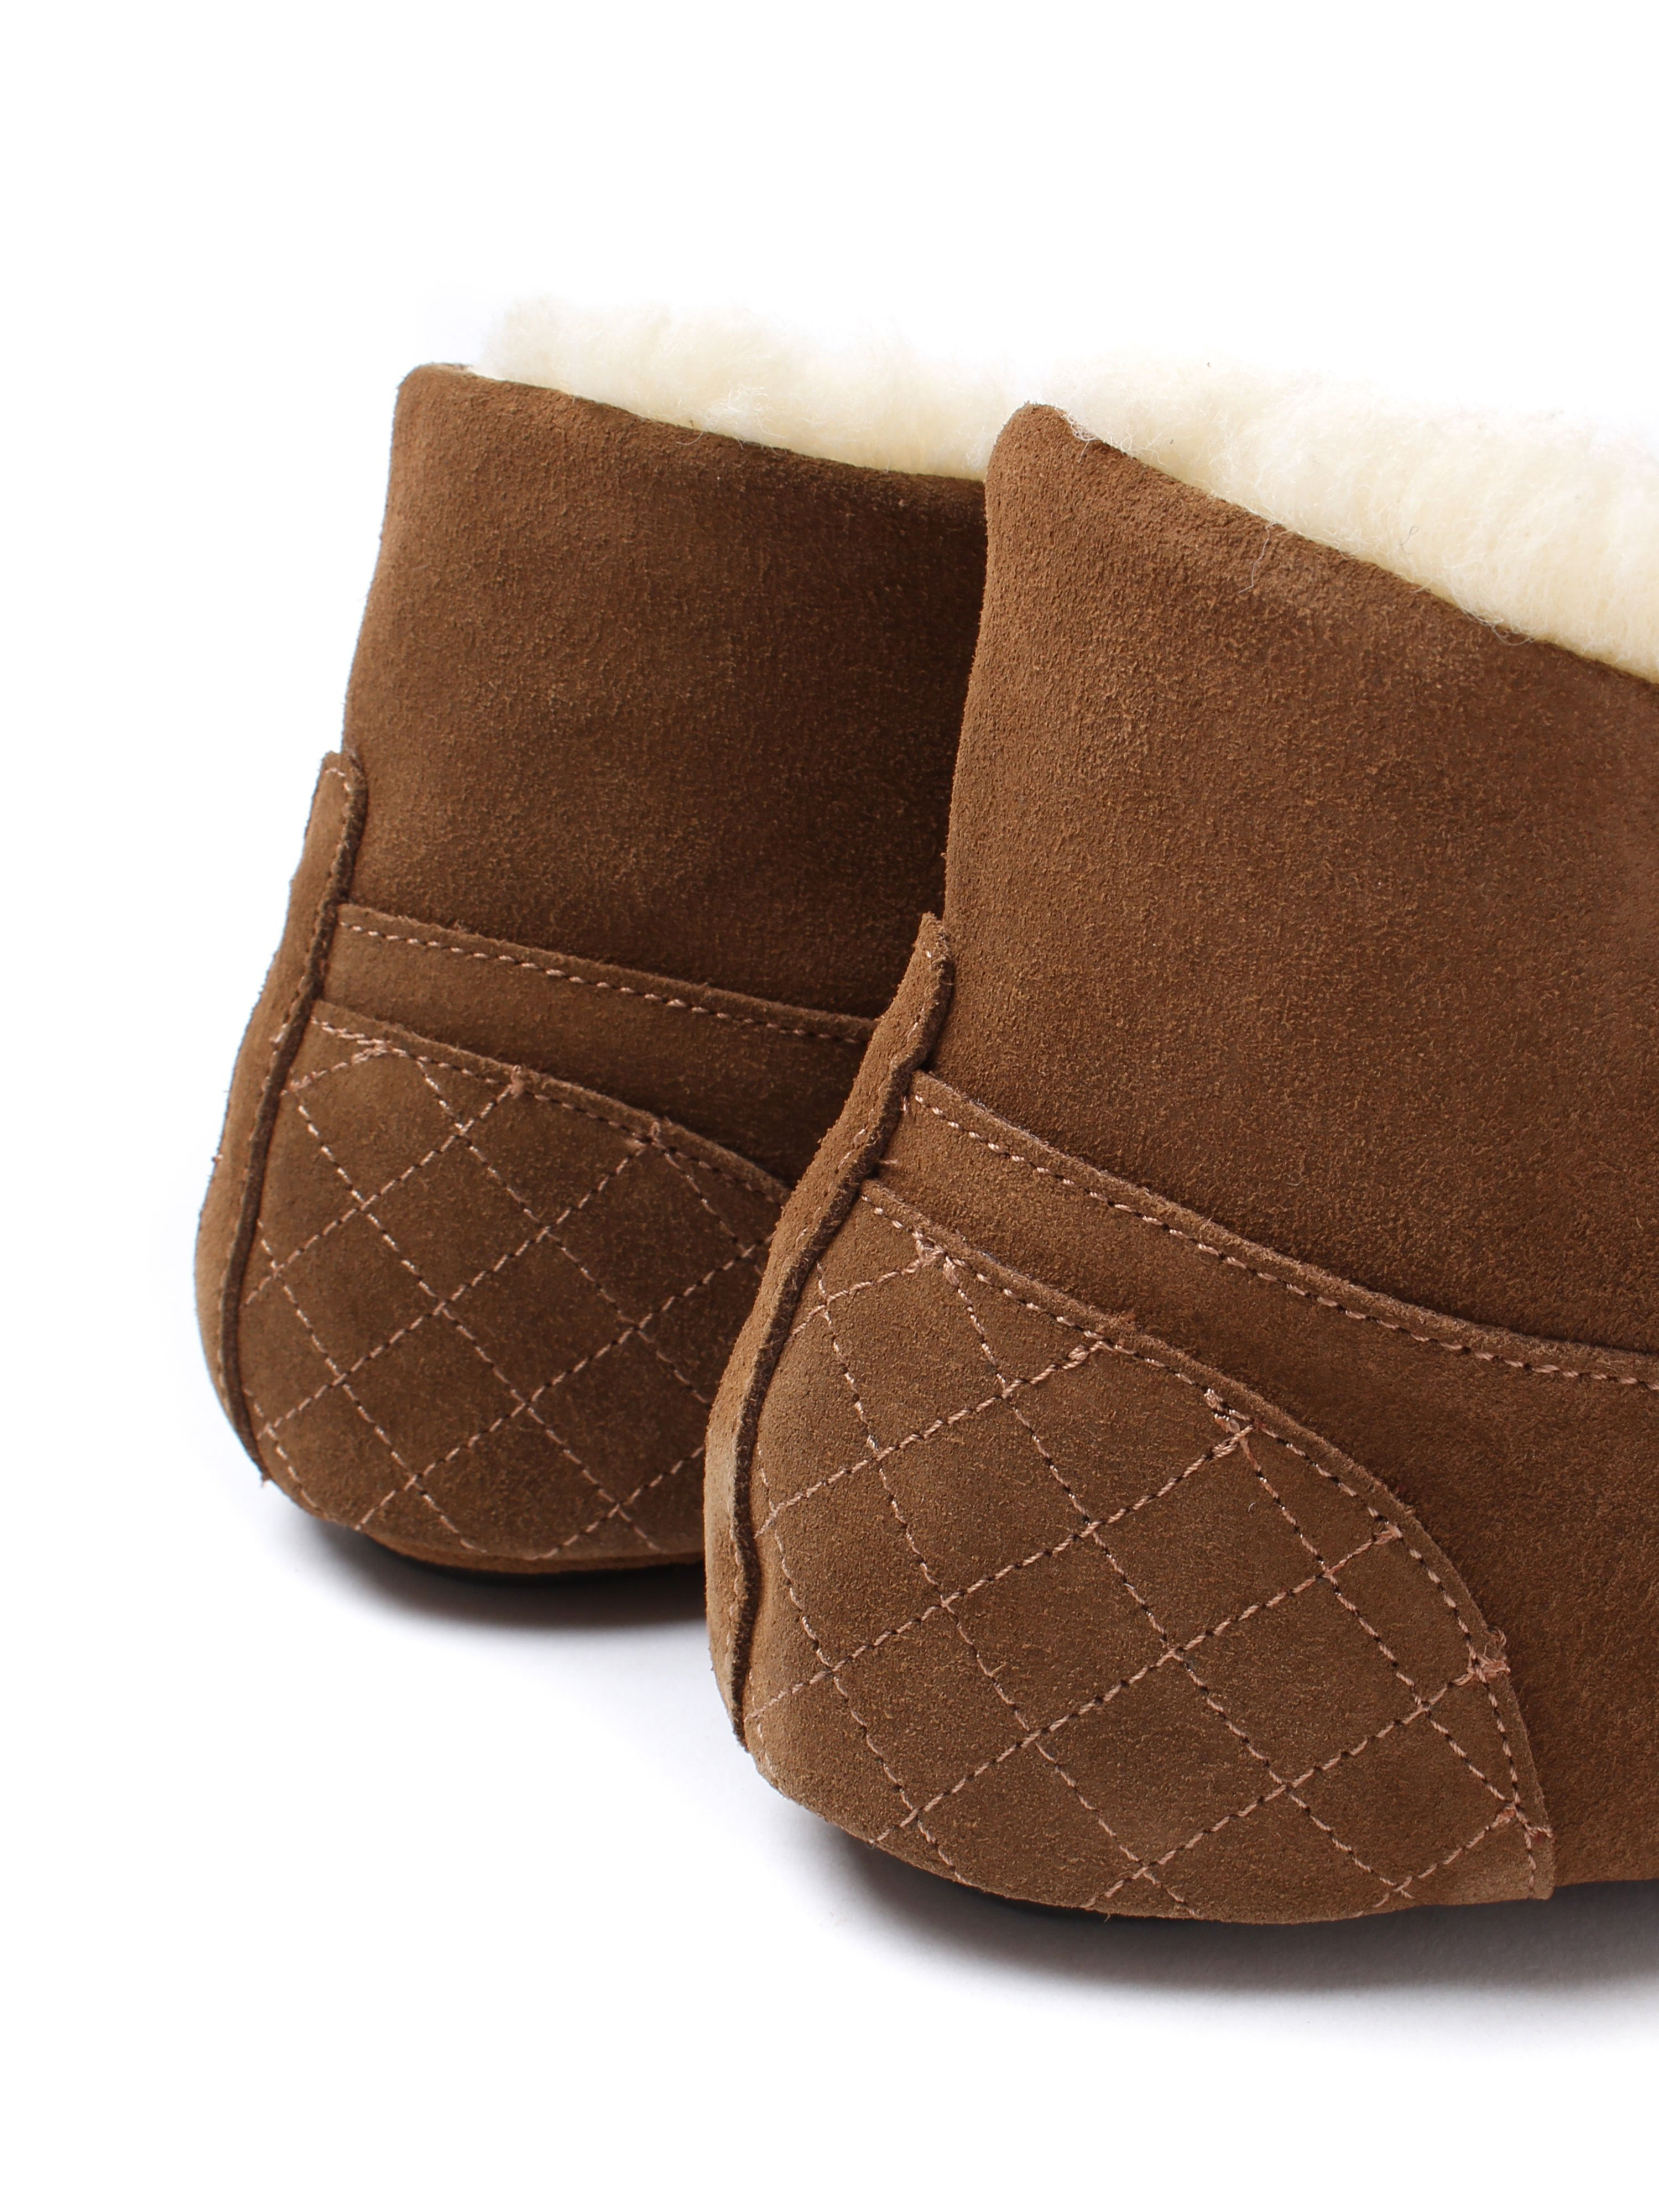 Barbour Women's Patsy Roll-Top Slippers - Camel Suede